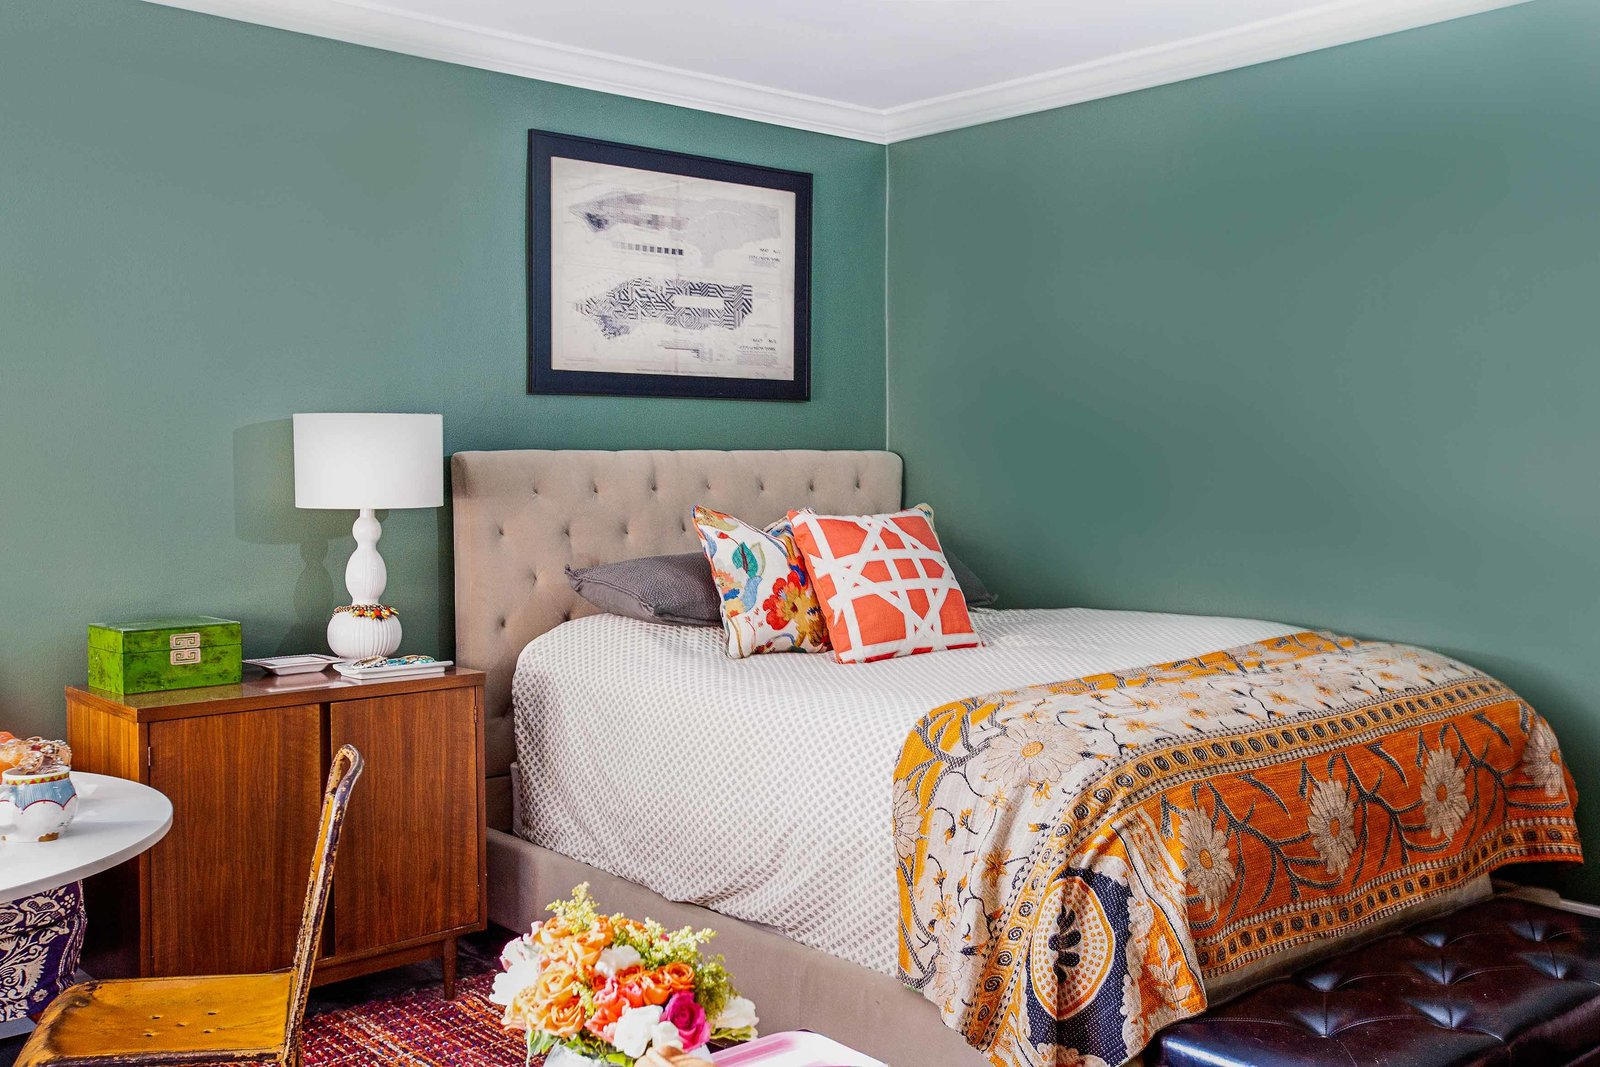 A bed with a tufted headboard and sideboard end table.